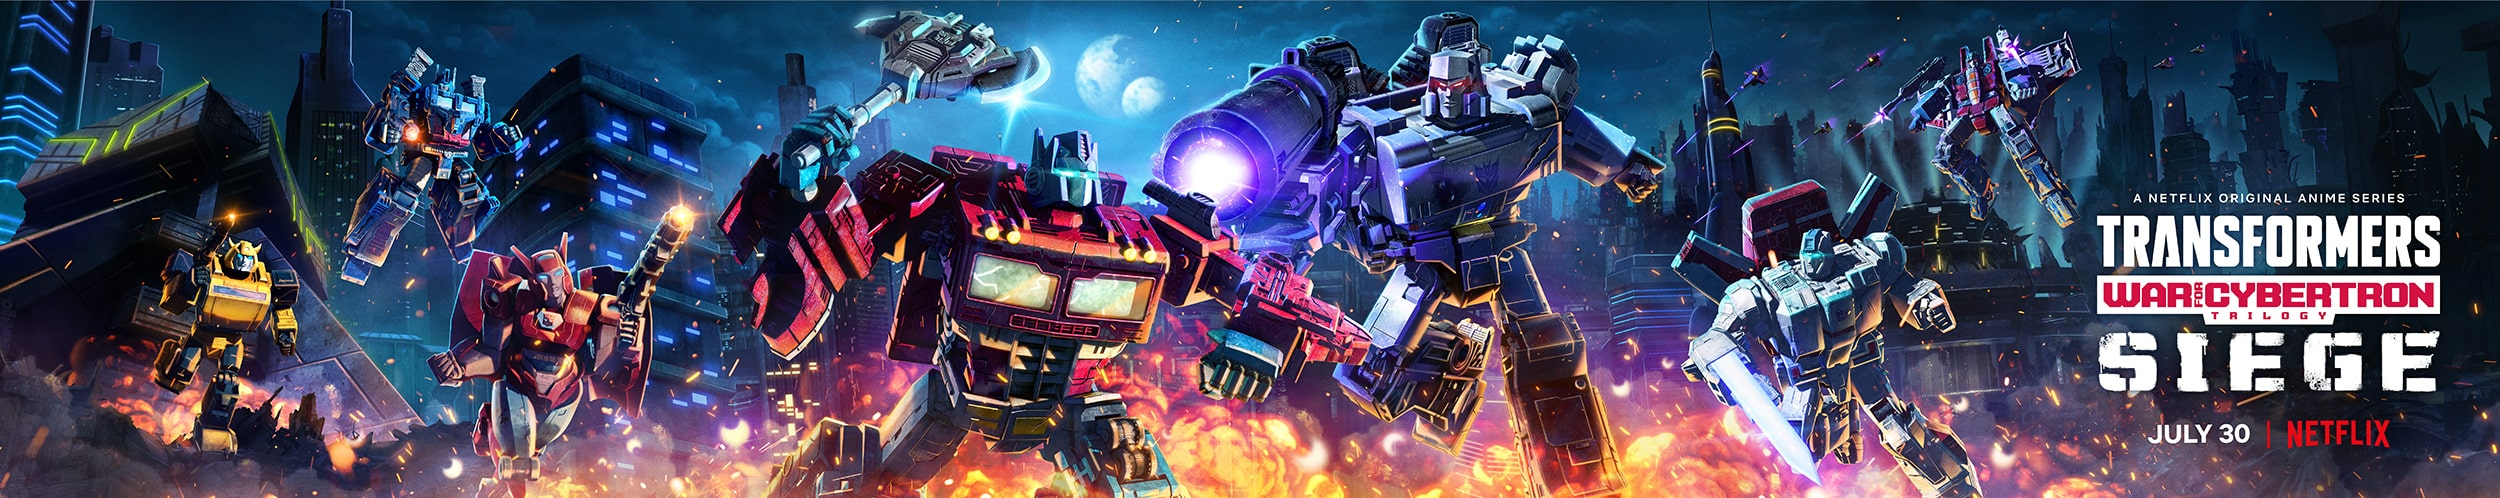 Rooster Teeth Teams with Creative Consultancy Horseless Cowboy to Bring Out of This World Casting and Voice Recording Services to Netflix's Transformers: War for Cybertron Trilogy